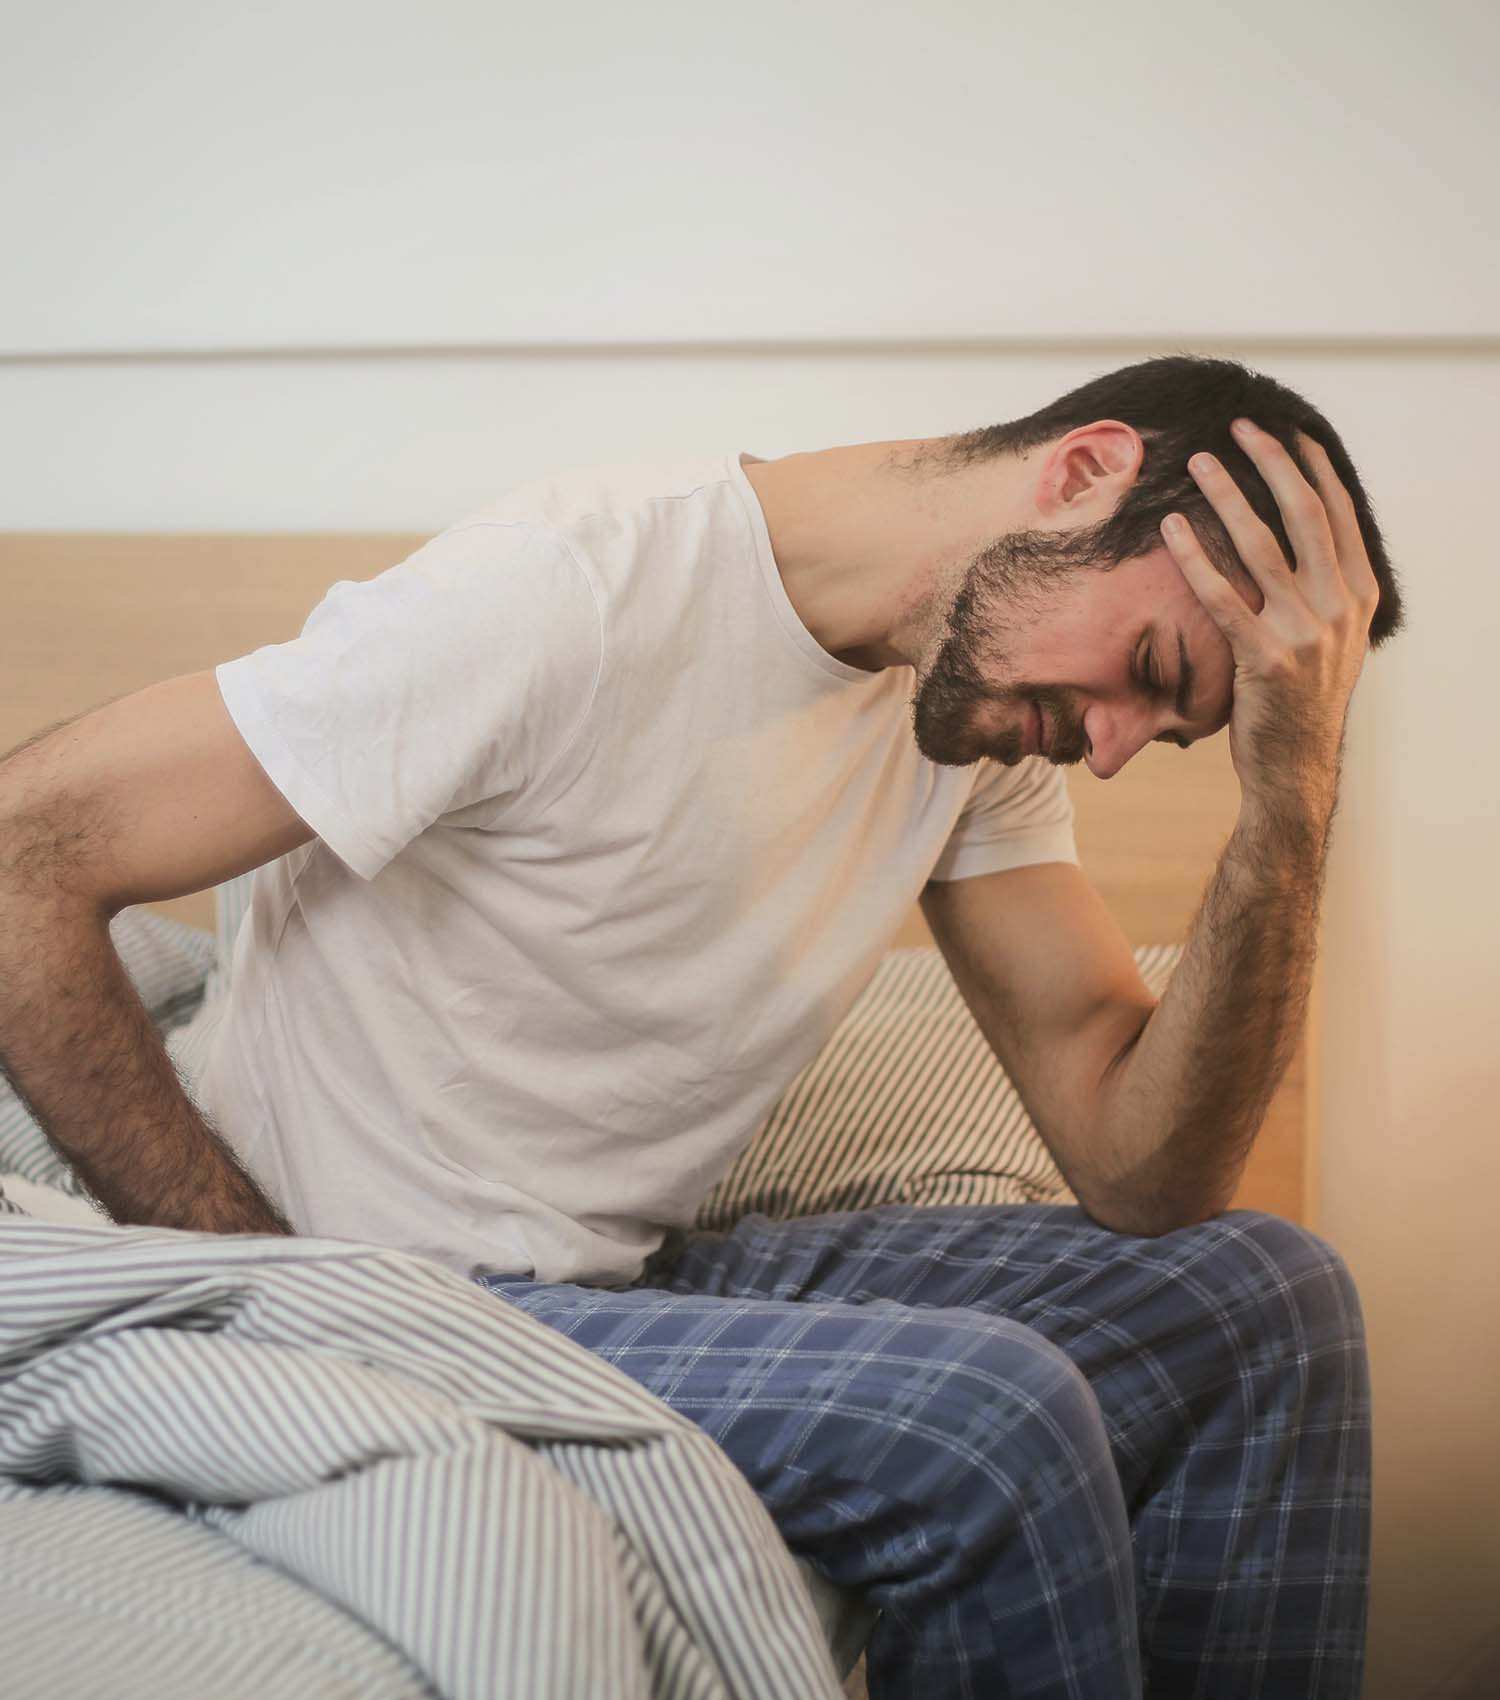 Man sitting on bed waking up with headache